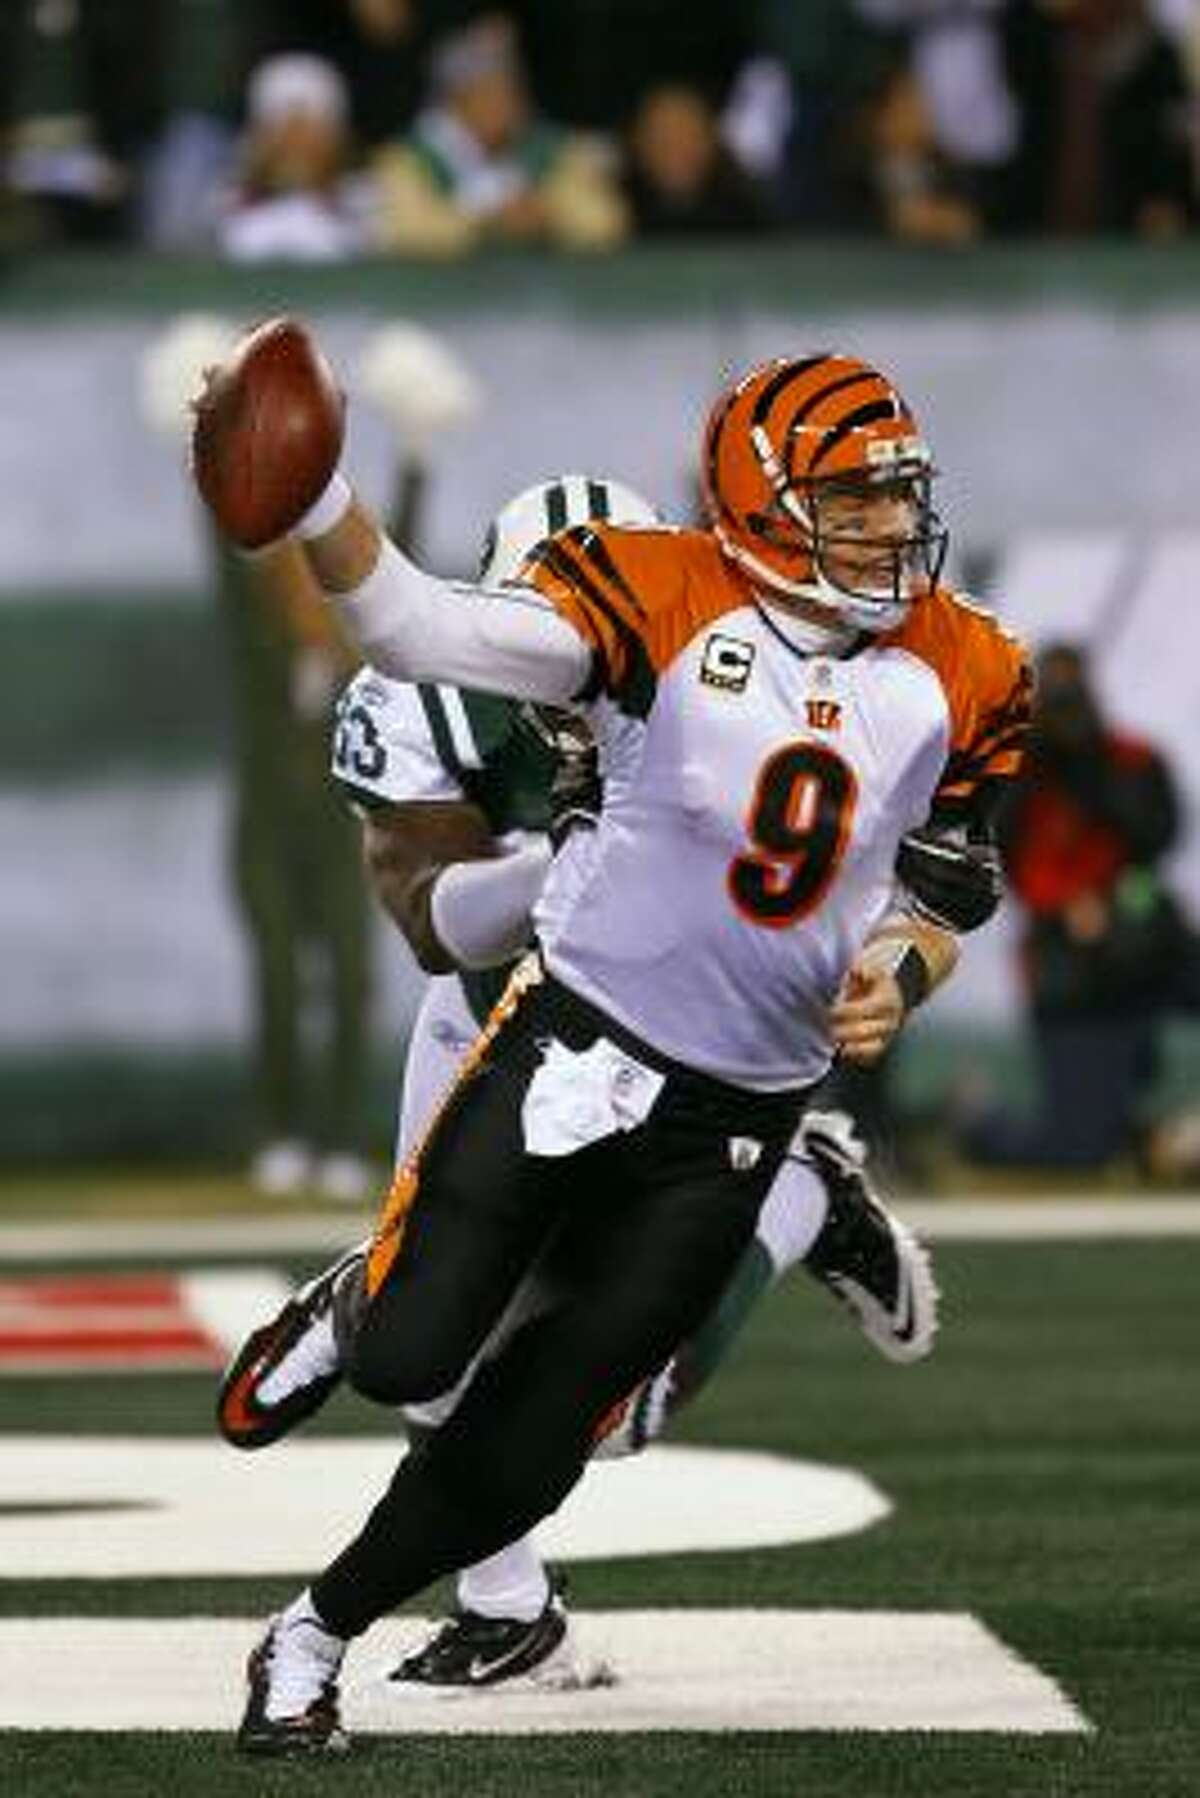 Bengals quarterback Carson Palmer (9) is tackled in the end zone for a safety by New York's Trevor Pryce.